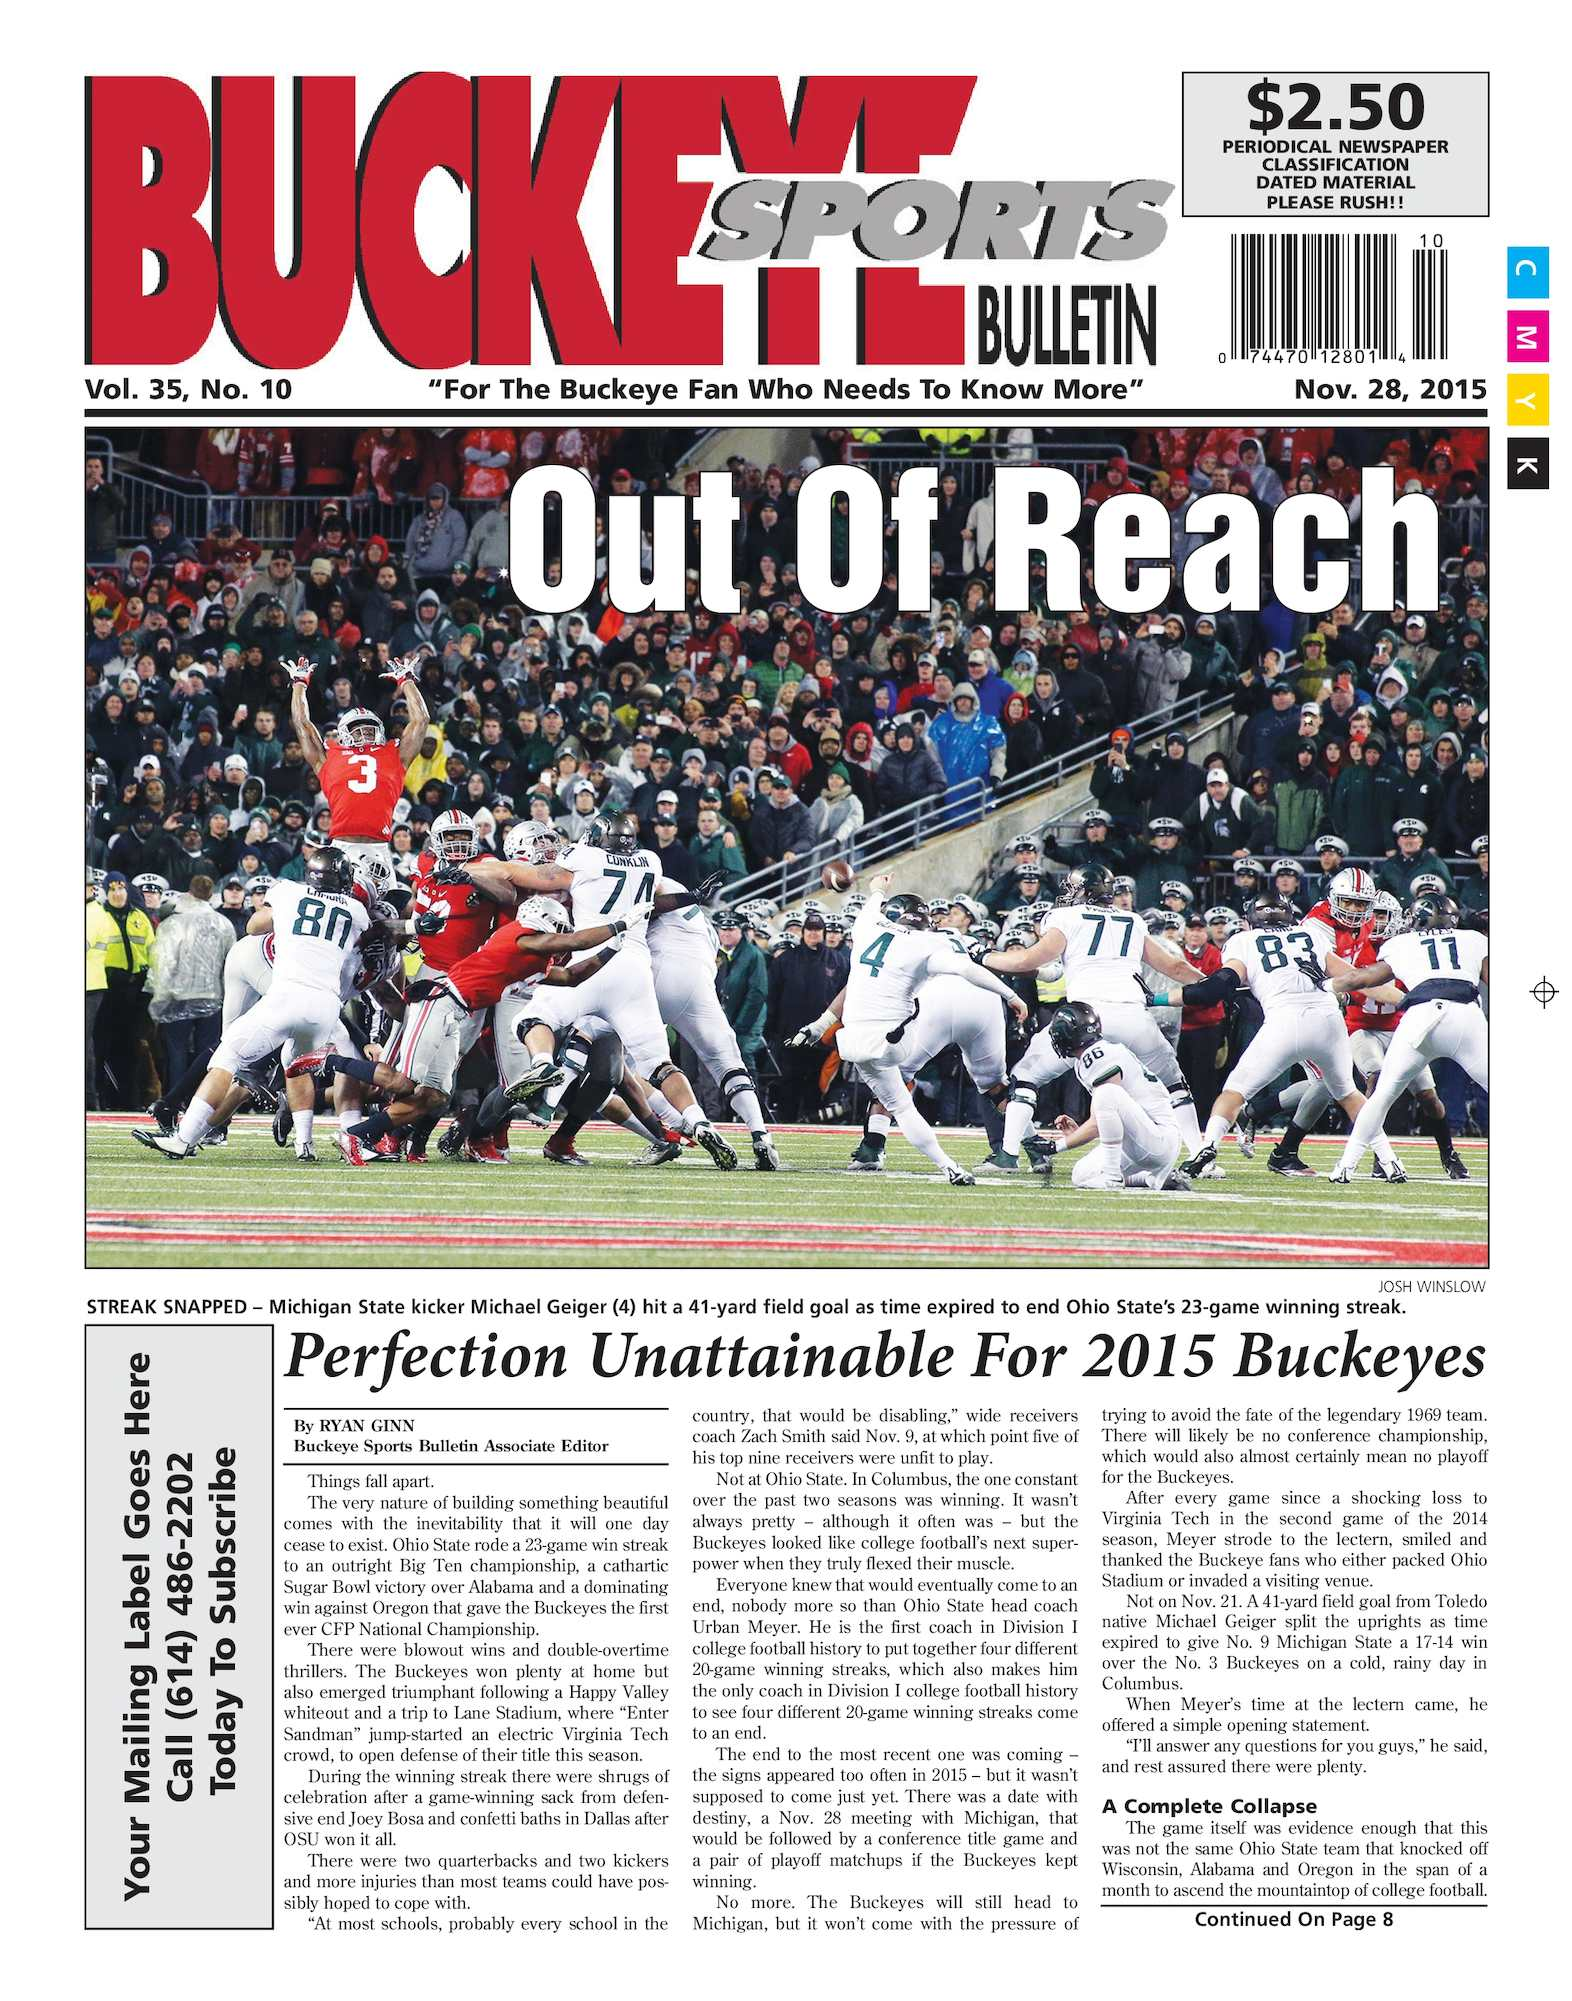 cbfc187b302 Calaméo - Buckeye Sports Bulletin November 28